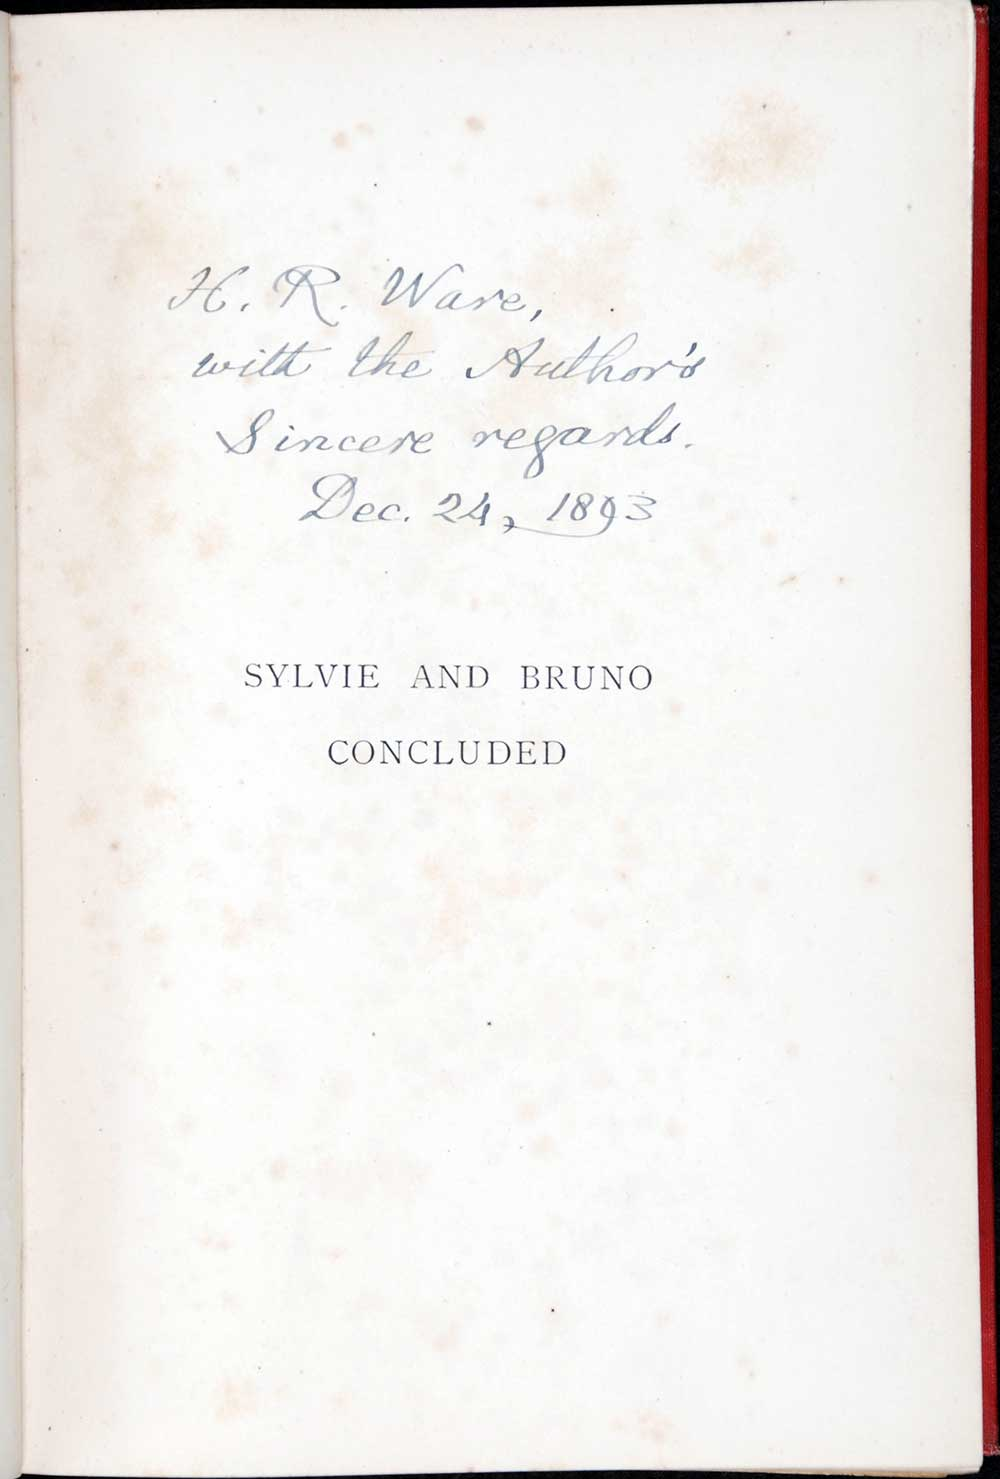 Lewis Carroll. <em>Sylvie and Bruno concluded</em>. London: Macmillan and Co., 1893.